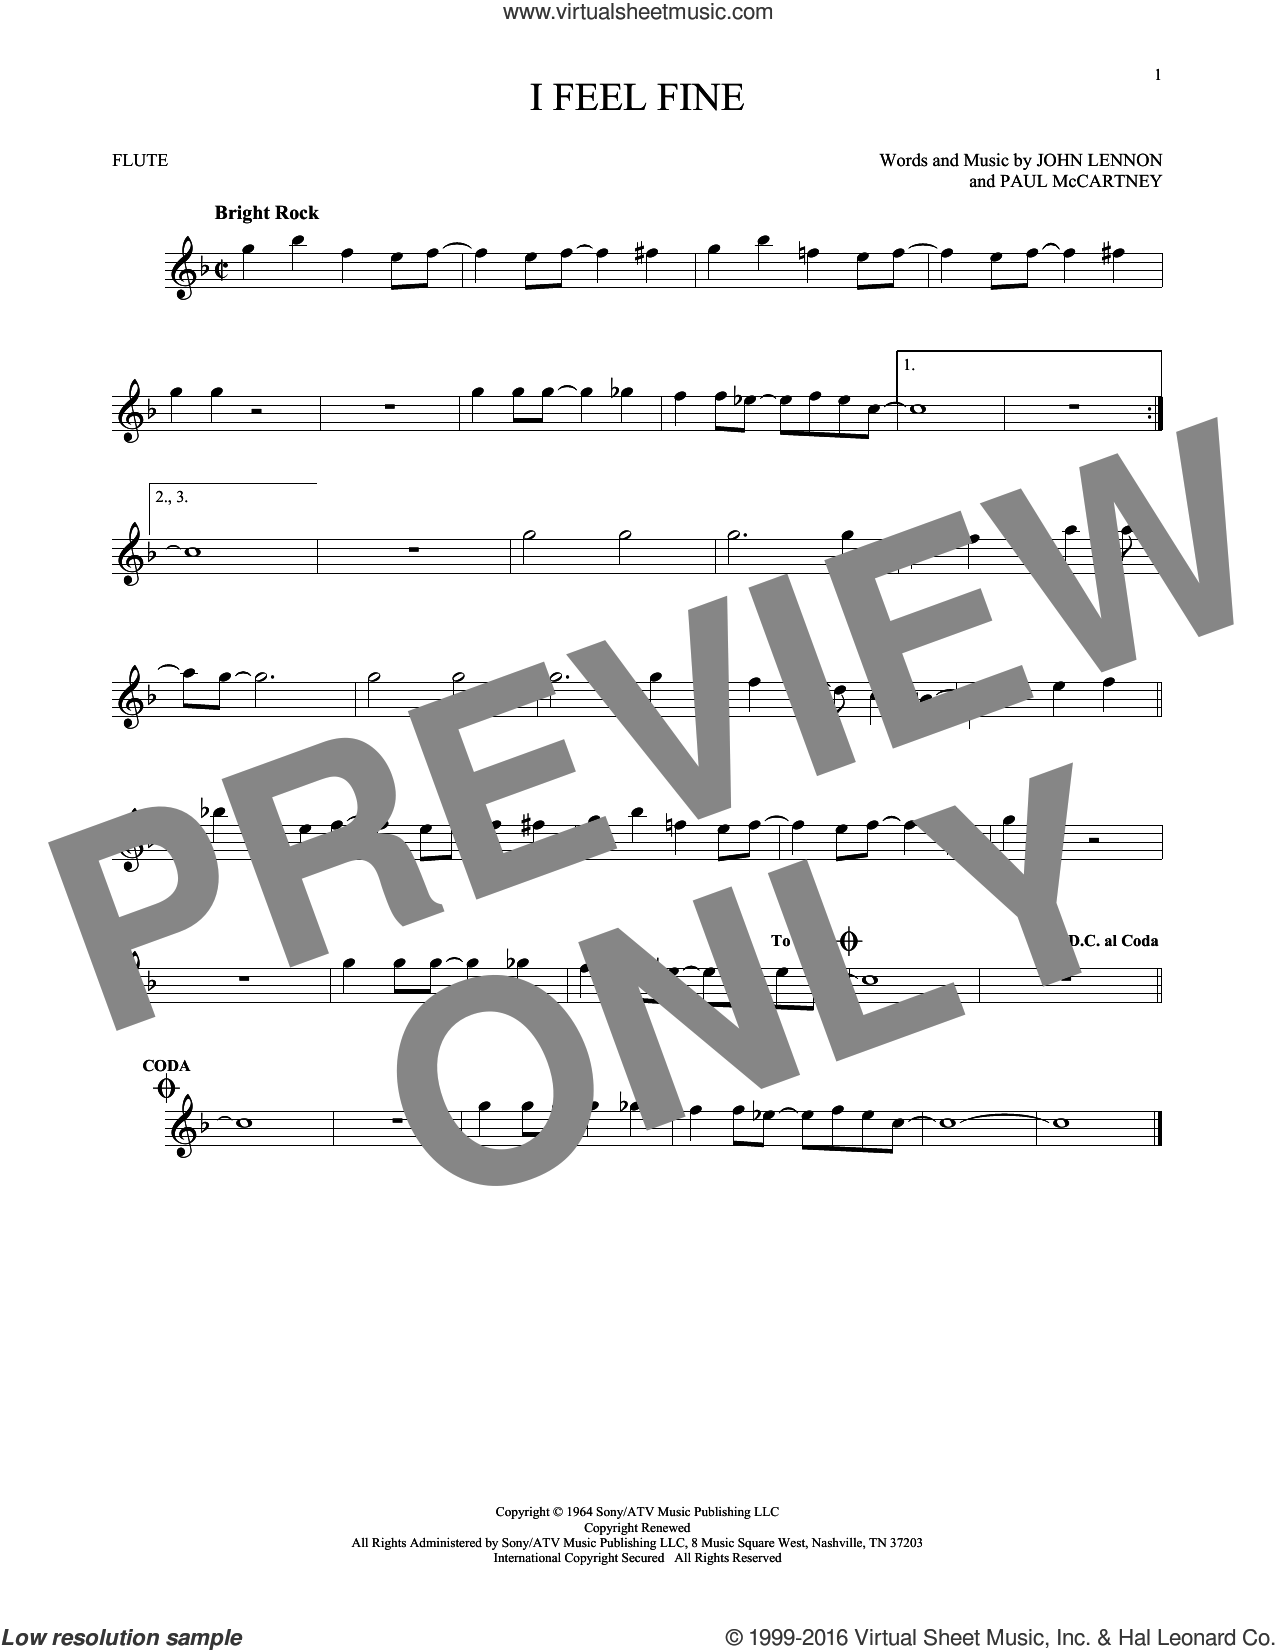 I Feel Fine sheet music for flute solo by Paul McCartney